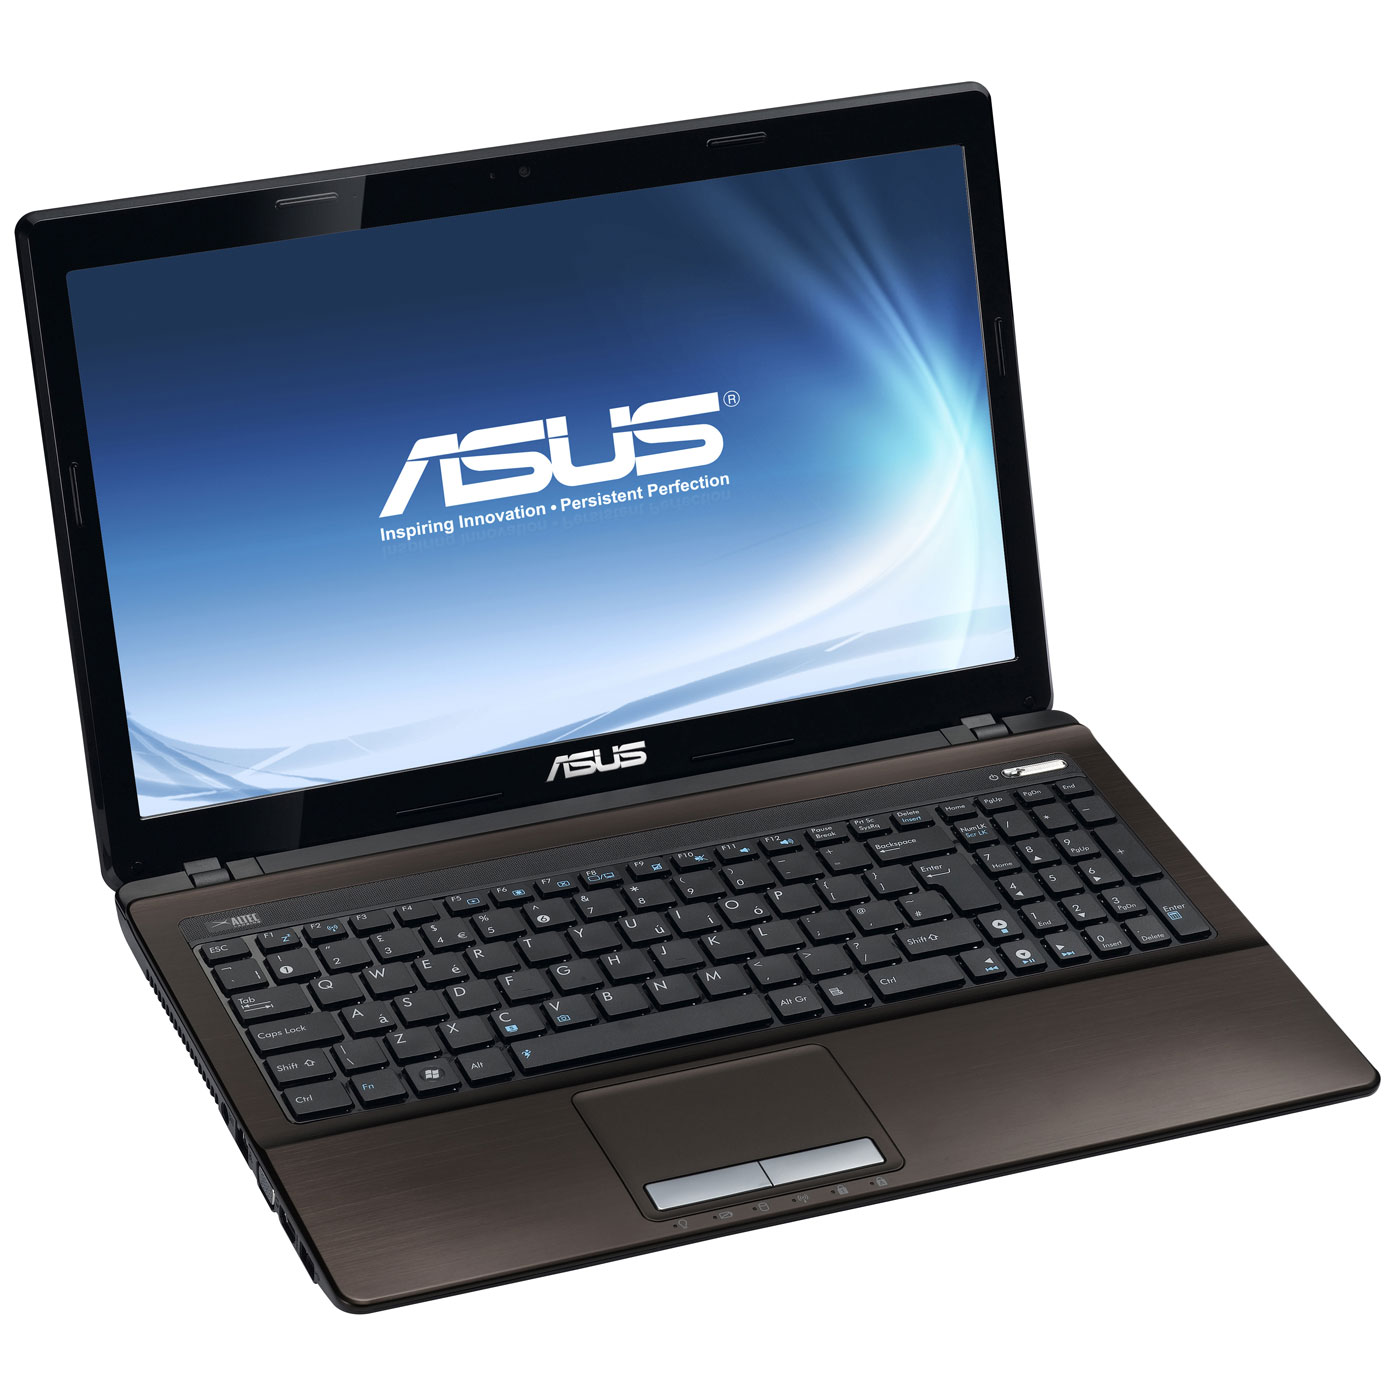 "PC portable ASUS K53SD-SX344V Marron Intel Core i3-2350M 4 Go 500 Go 15.6"" LED NVIDIA GeForce GT 610M Graveur DVD Wi-Fi N/Bluetooth Webcam Windows 7 Premium 64 bits (garantie constructeur 2 ans)"